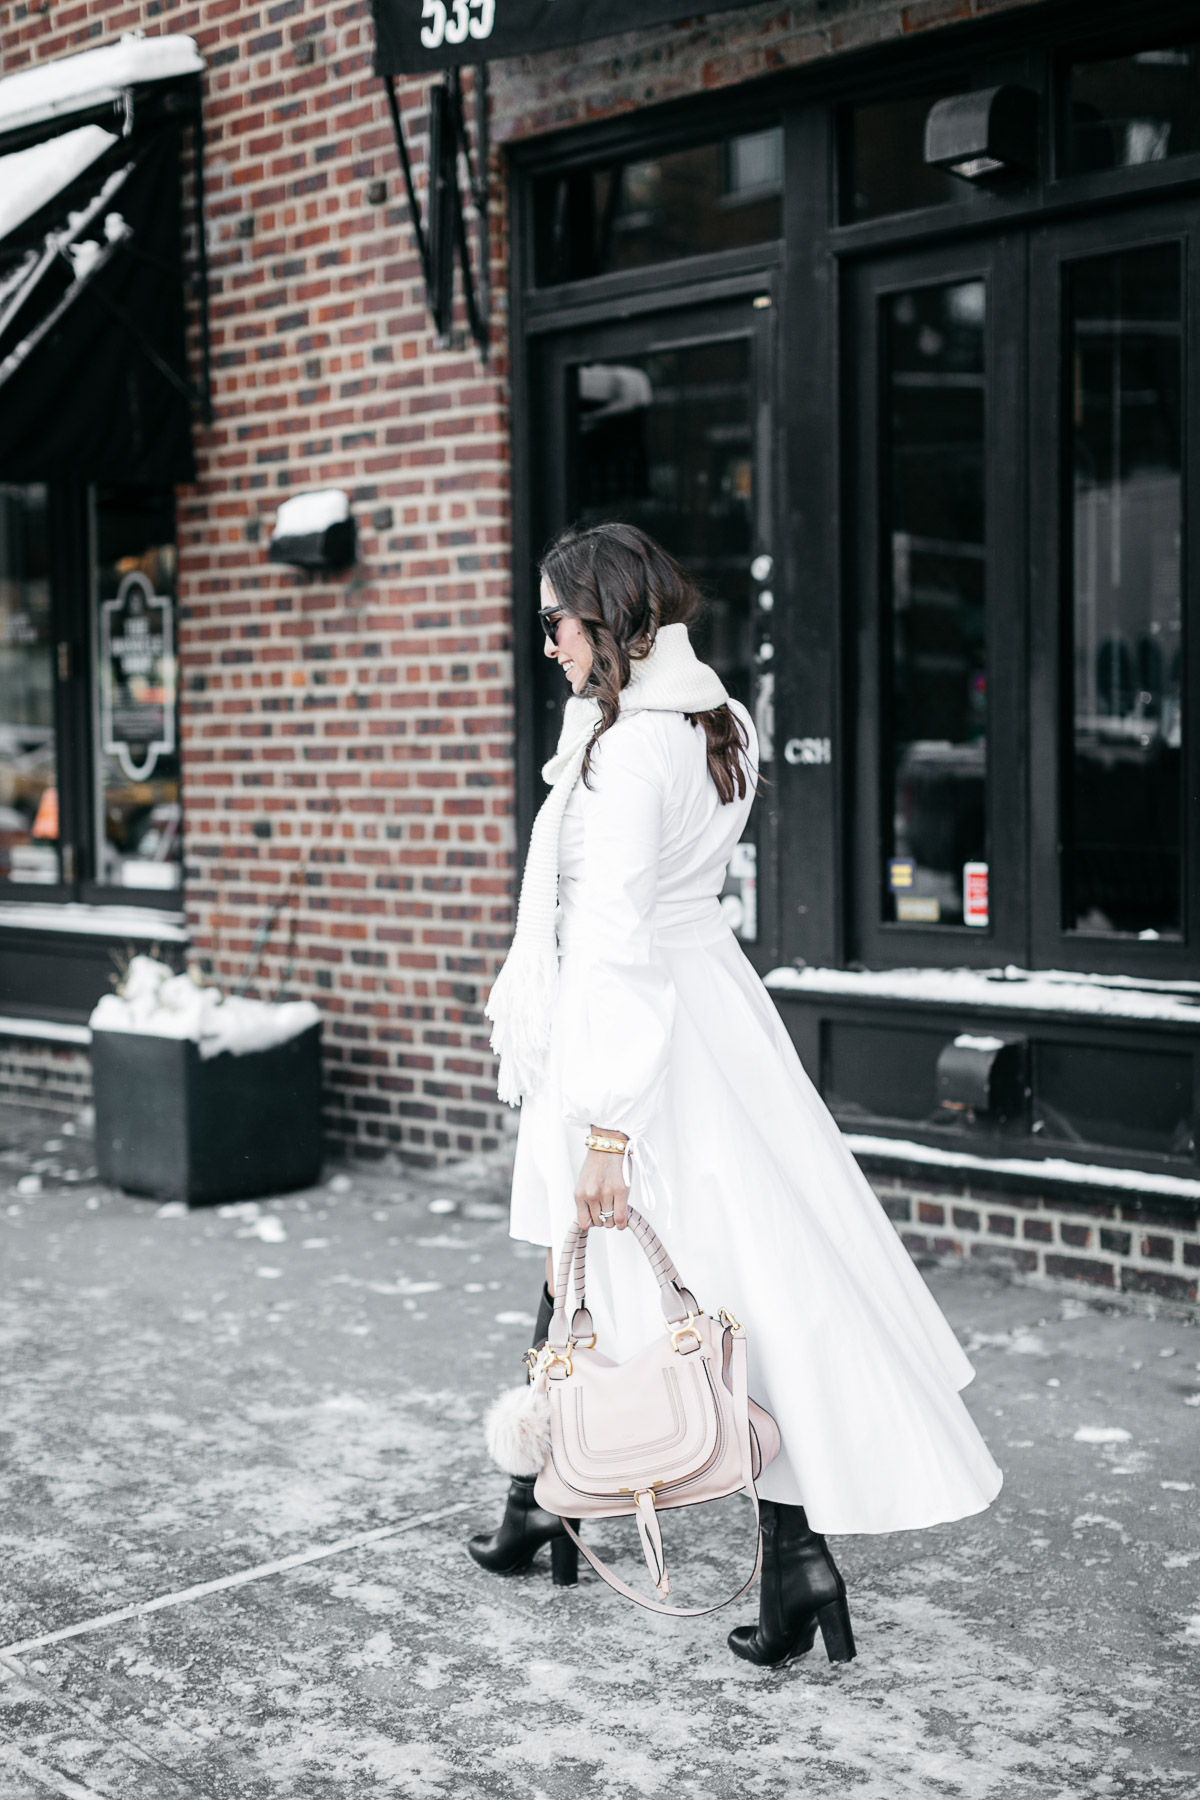 Amanda from A Glam Lifestyle blog wears Carolina Constas Lena white shirt dress in Greenwich Village during NYFW Spring 2017 while carrying Chloe Marcie bag for her NYFW street style